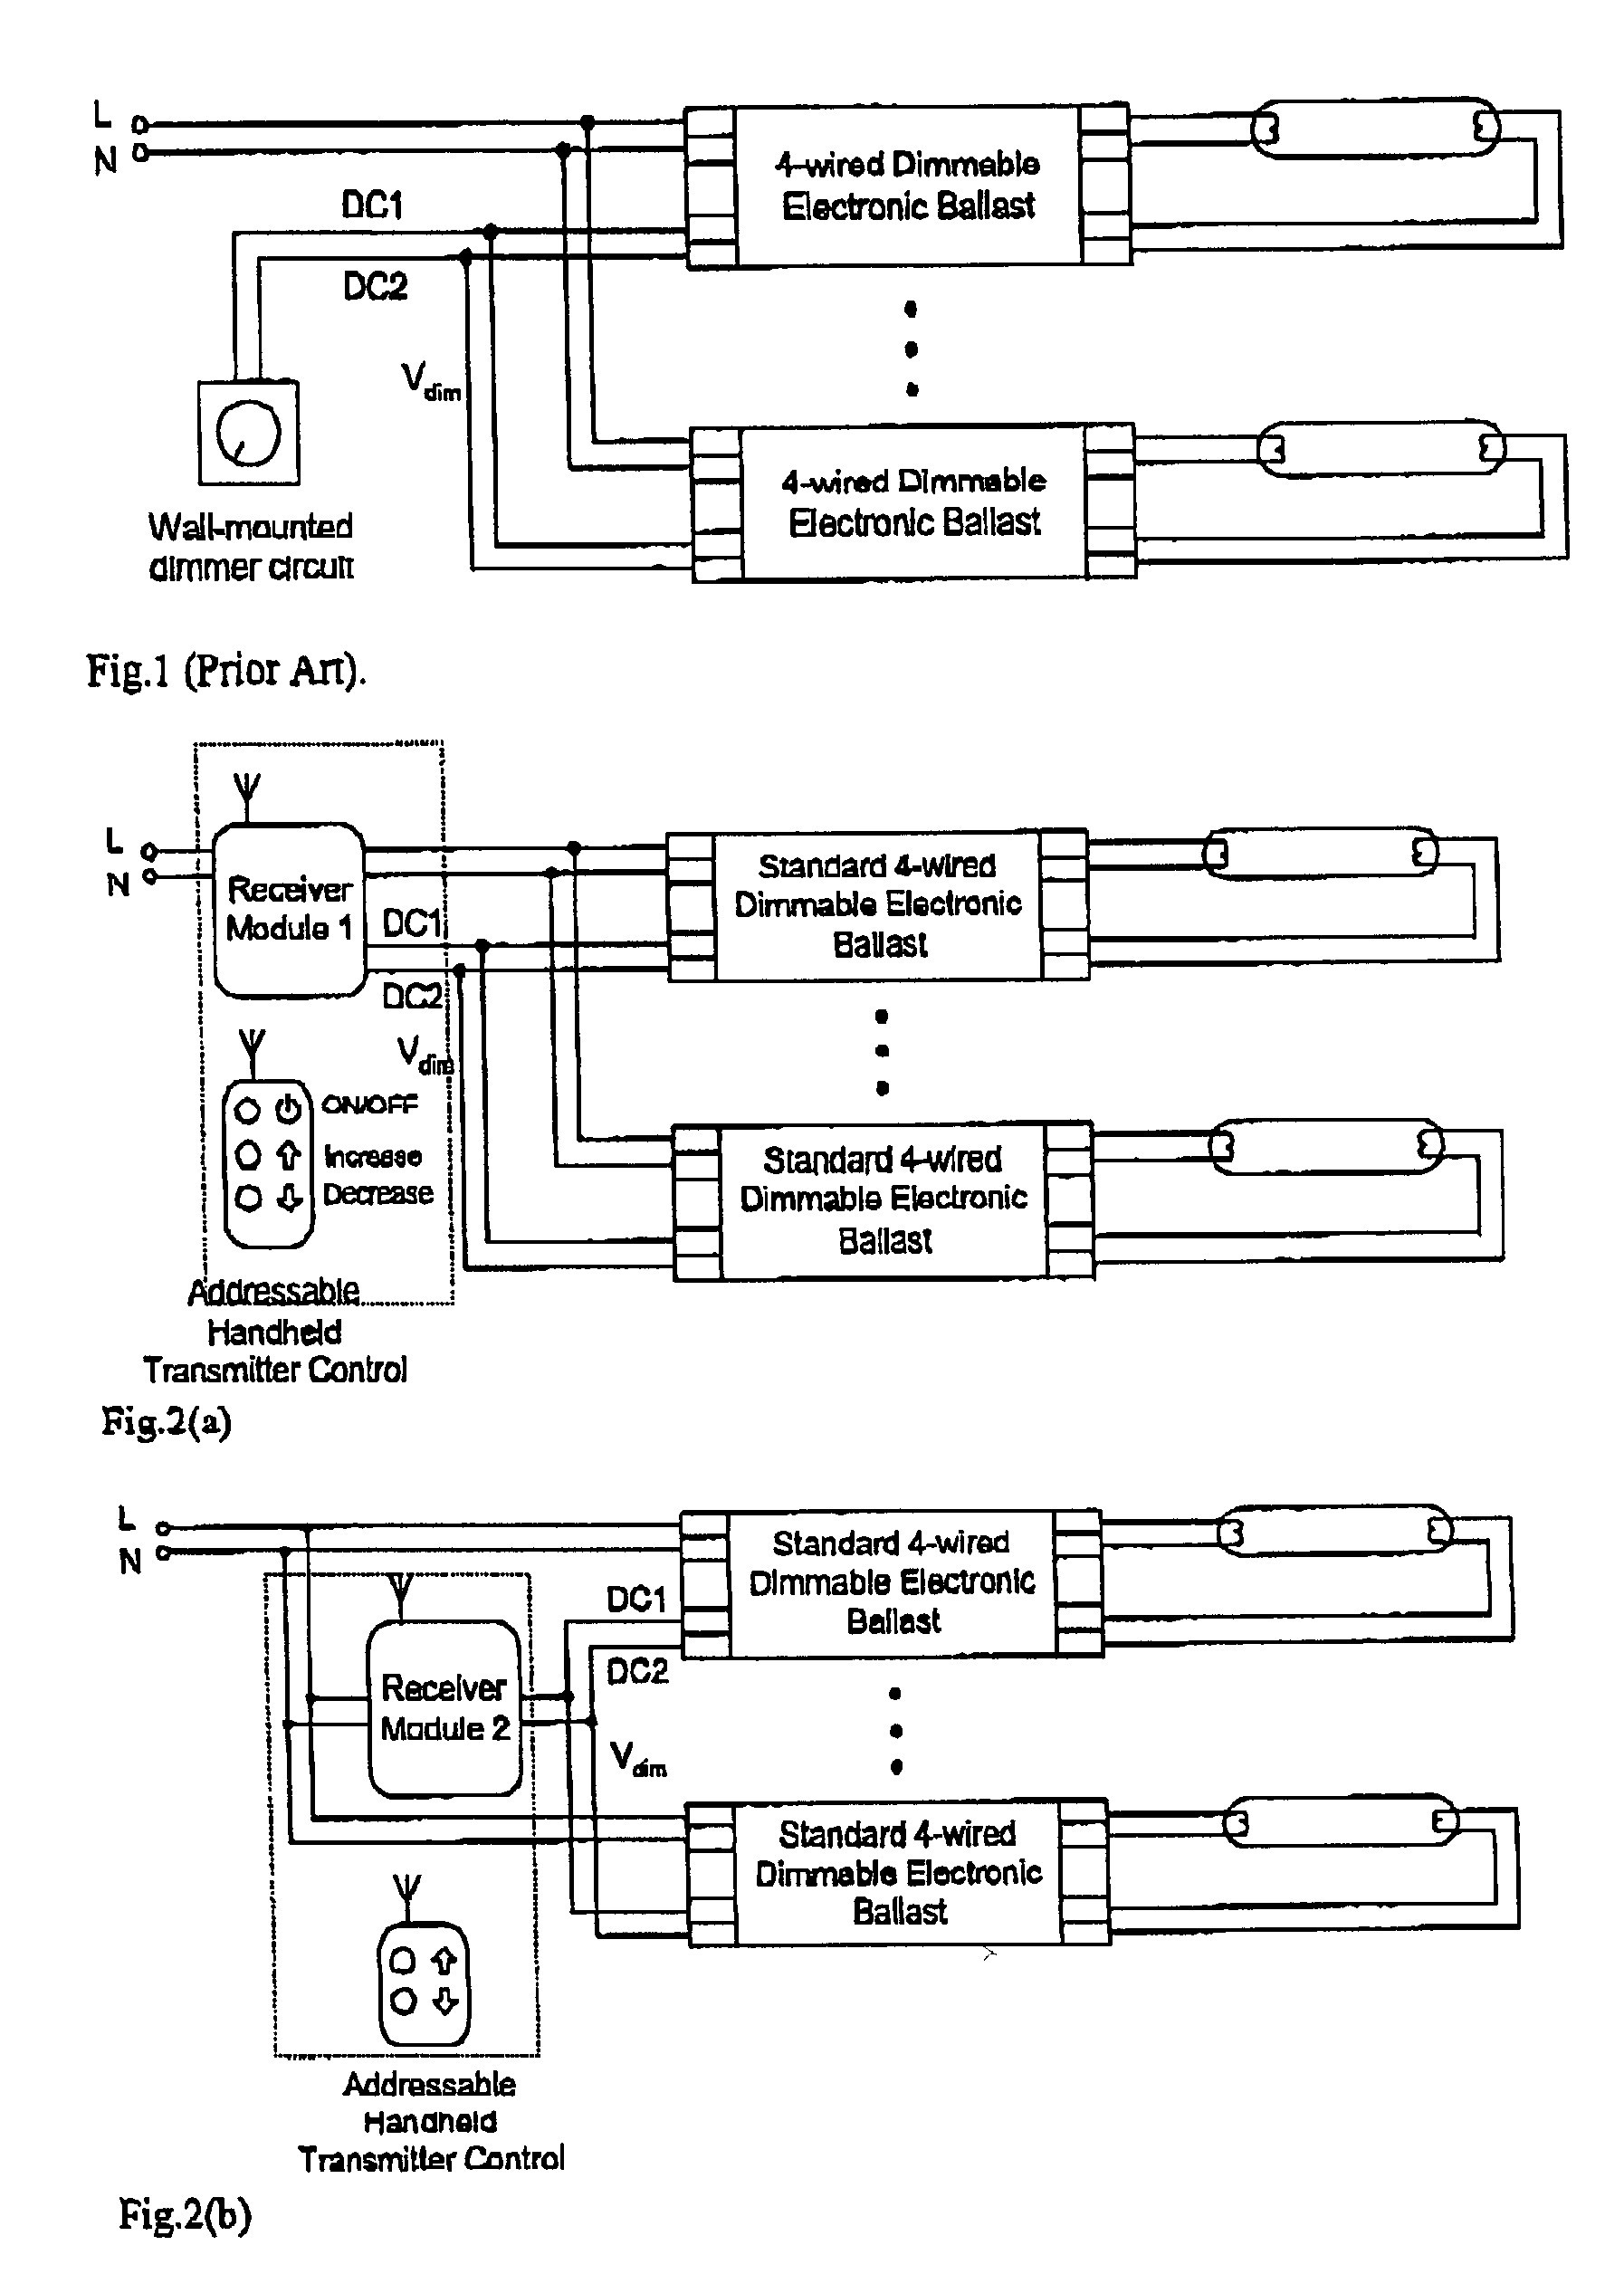 Dimmable Ballast Wiring Diagram Inspirational 3 Way Wiring Diagrams Diagram Of Dimmable Ballast Wiring Diagram